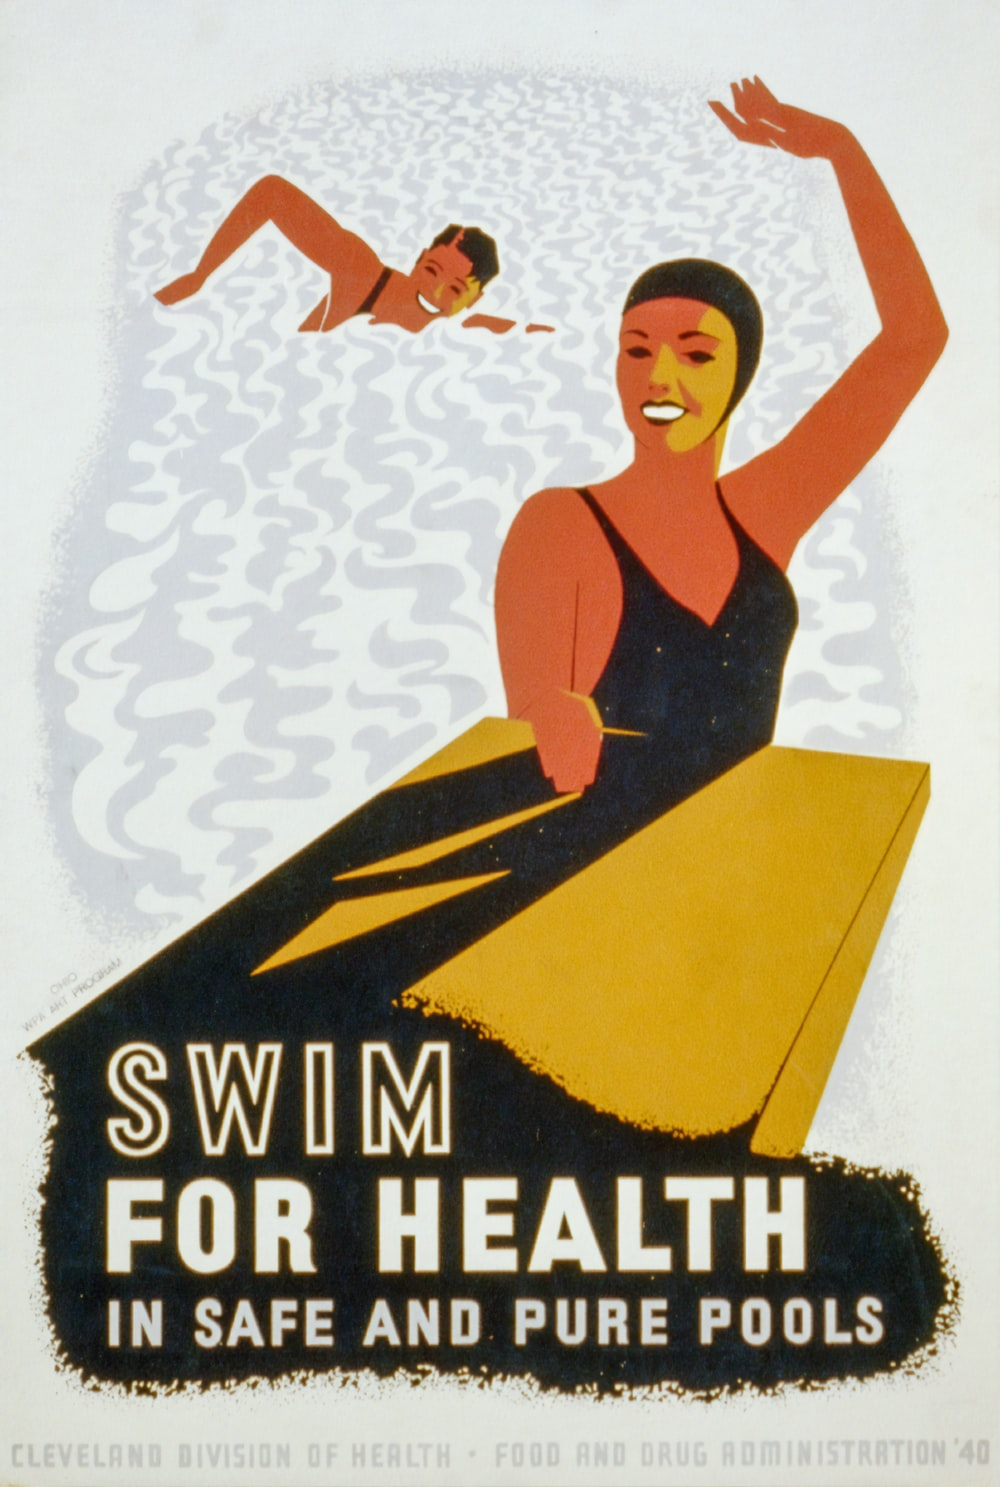 Swim for health in safe and pure pools. WPA poster.